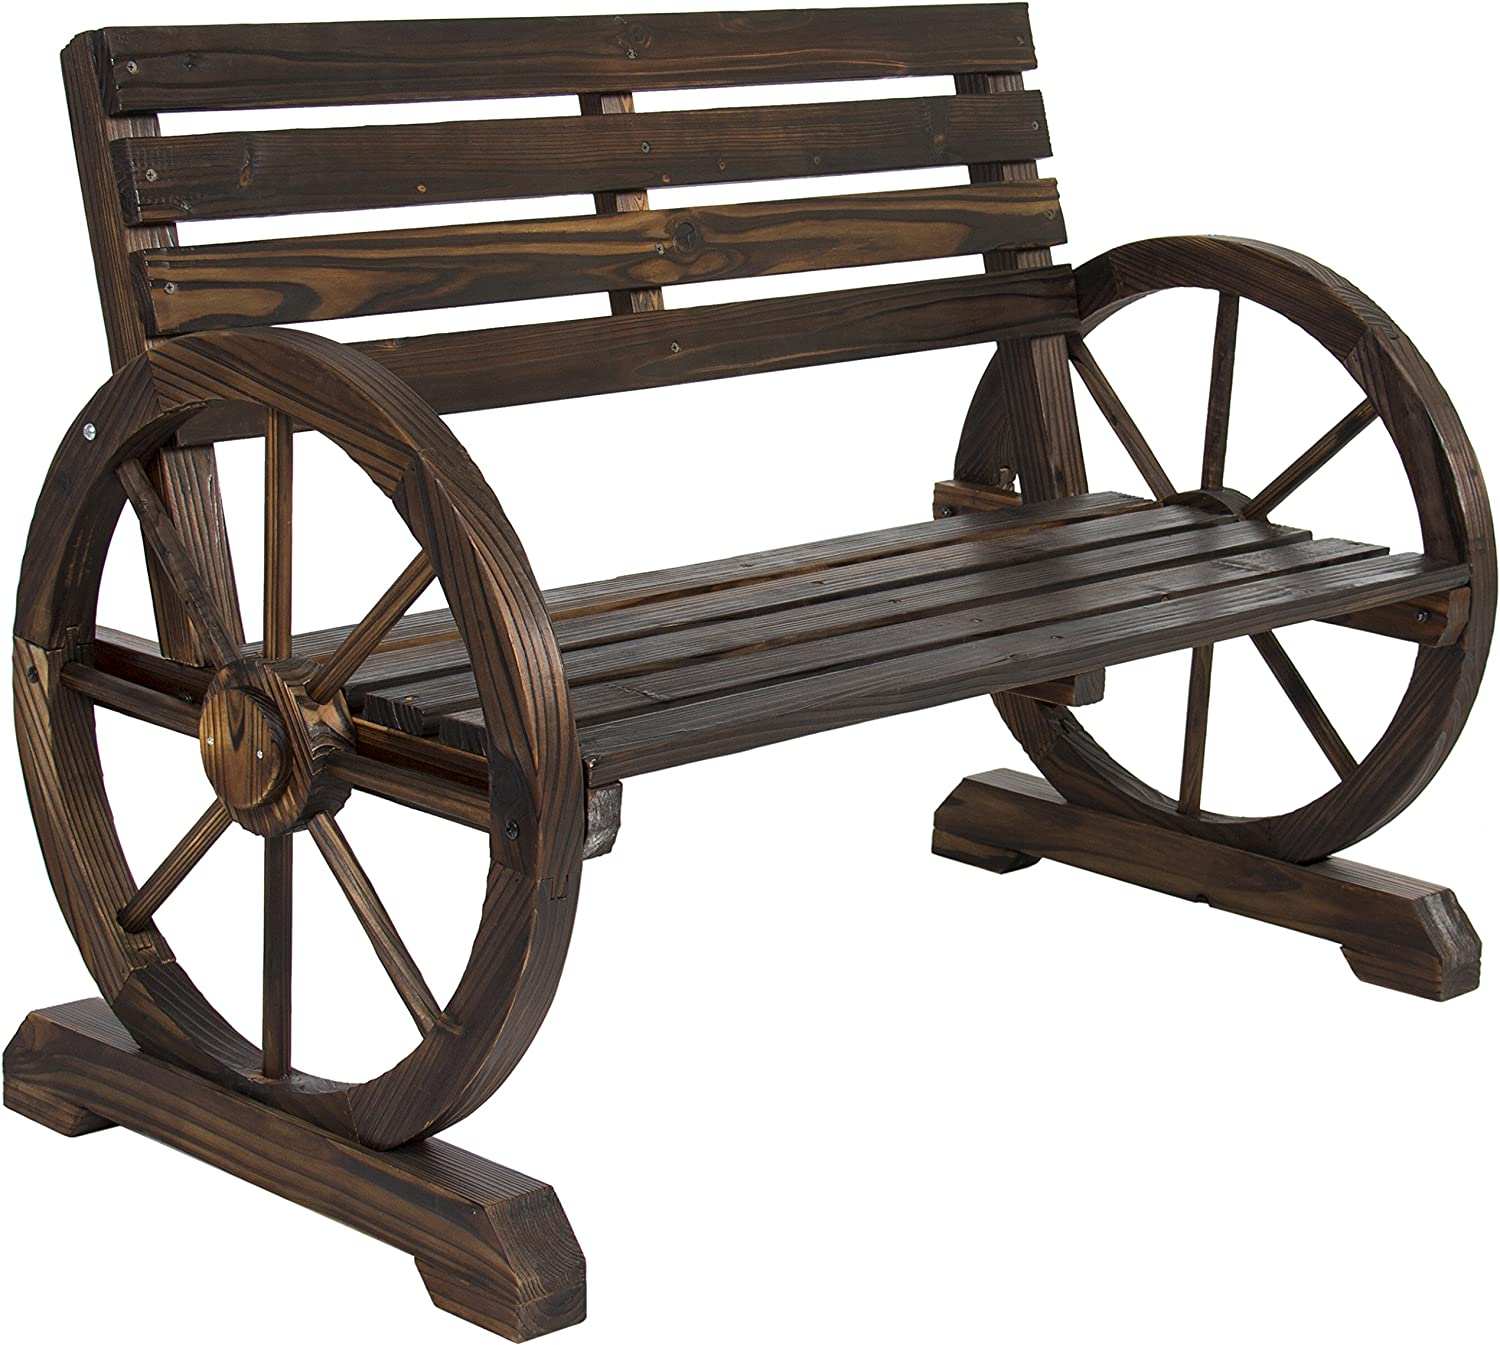 Best Choice Products Rustic 2-Person Wooden Wagon Wheel Bench with Slatted Seat and Backrest, Brown